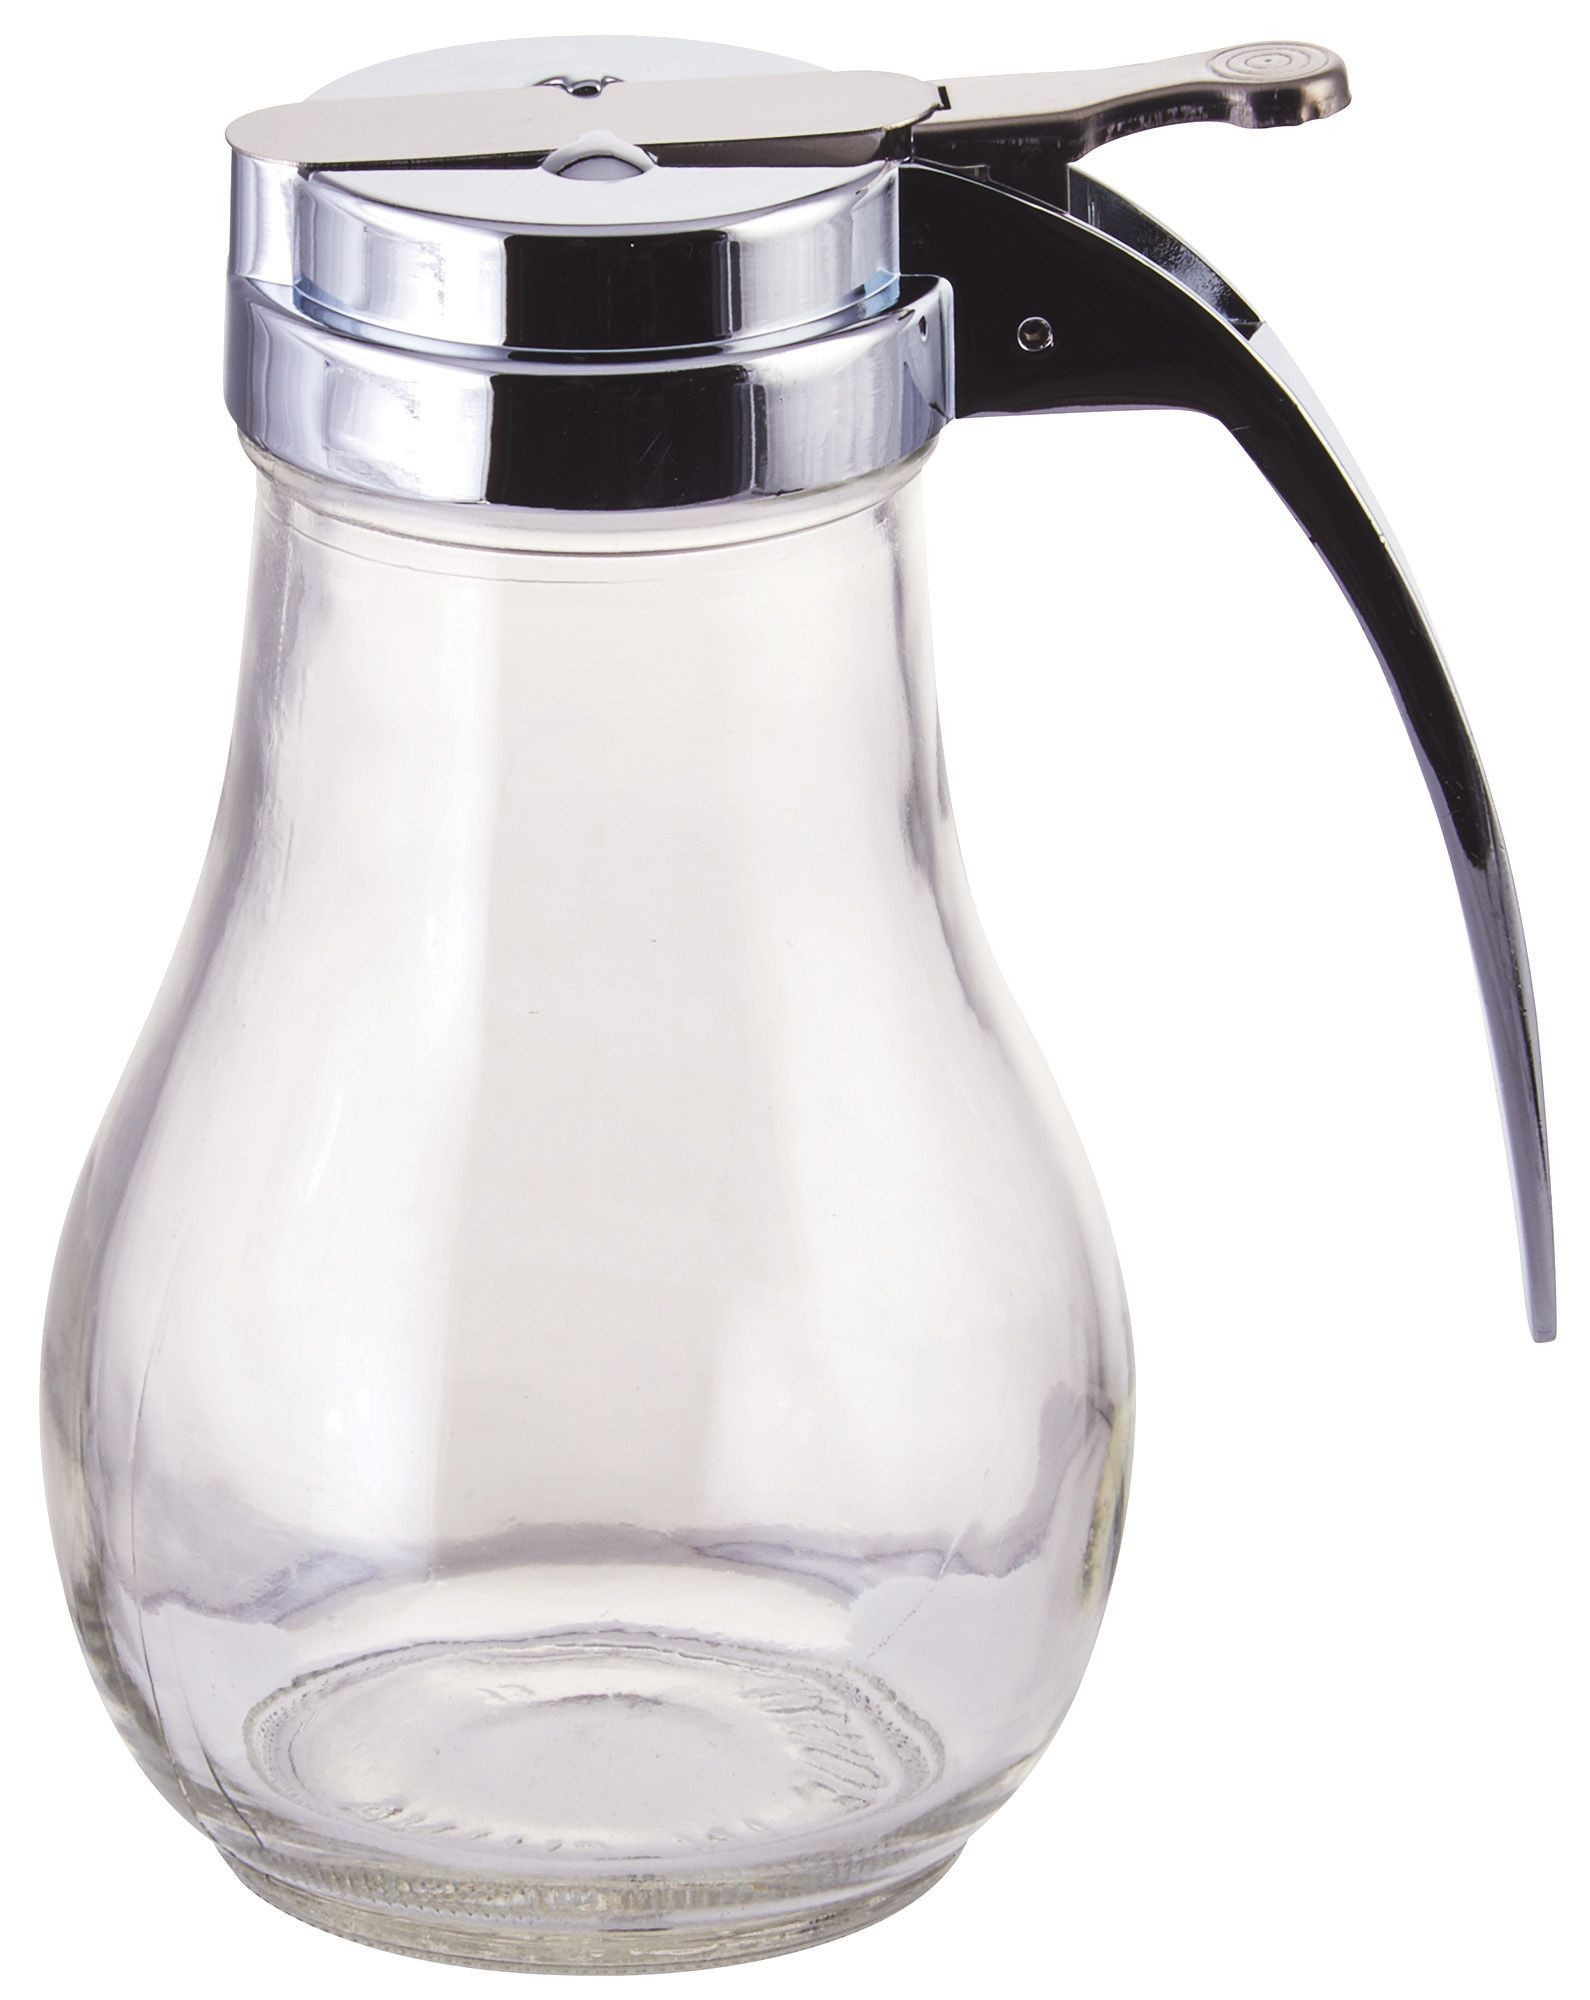 Winco G-116 Clear Glass 14 oz. Syrup Dispenser